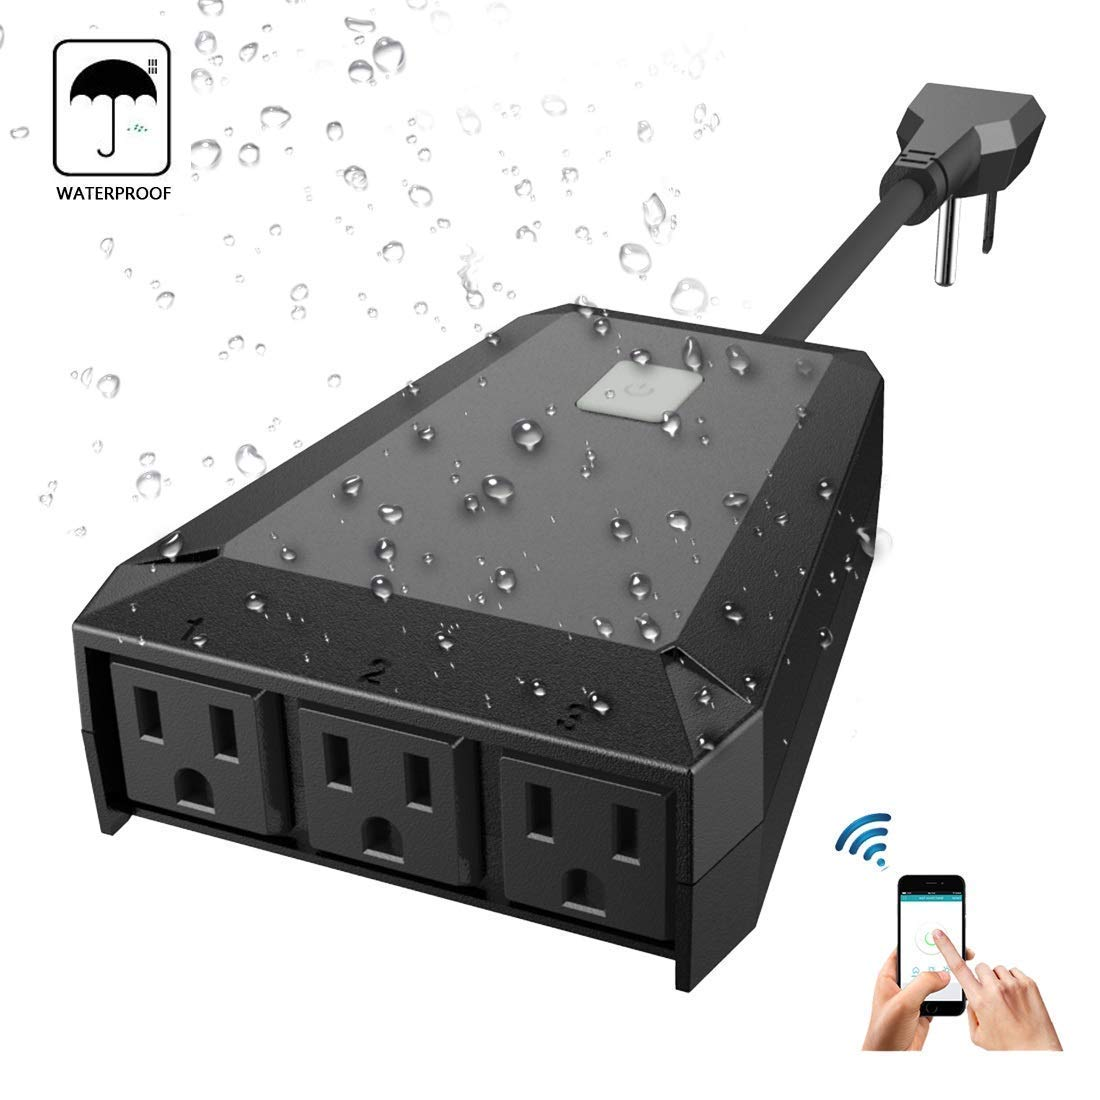 Outdoor Outlet,Waterproof WiFi Smart Socket with 3 AC Outputs Outlet,Smart Home Socket Timing Function Works with Amazon Alexa,Google Home & IFTTT,ETL FCC ROSH Listed (Outdoor Smart Outlet, Black) Shuofeng